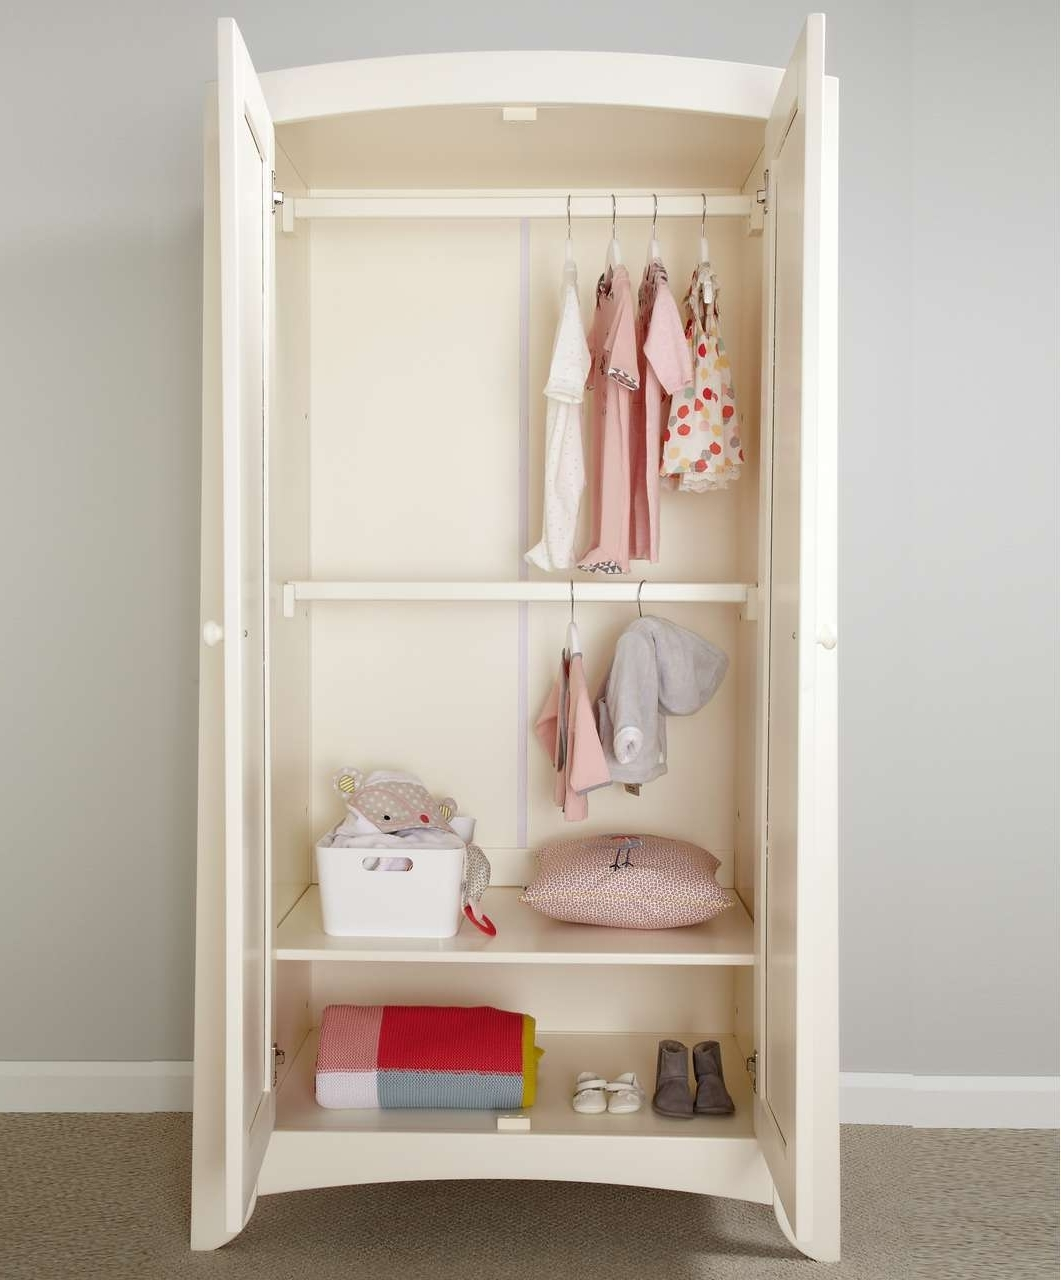 Interior With Regard To Wardrobes For Baby Clothes (View 6 of 15)